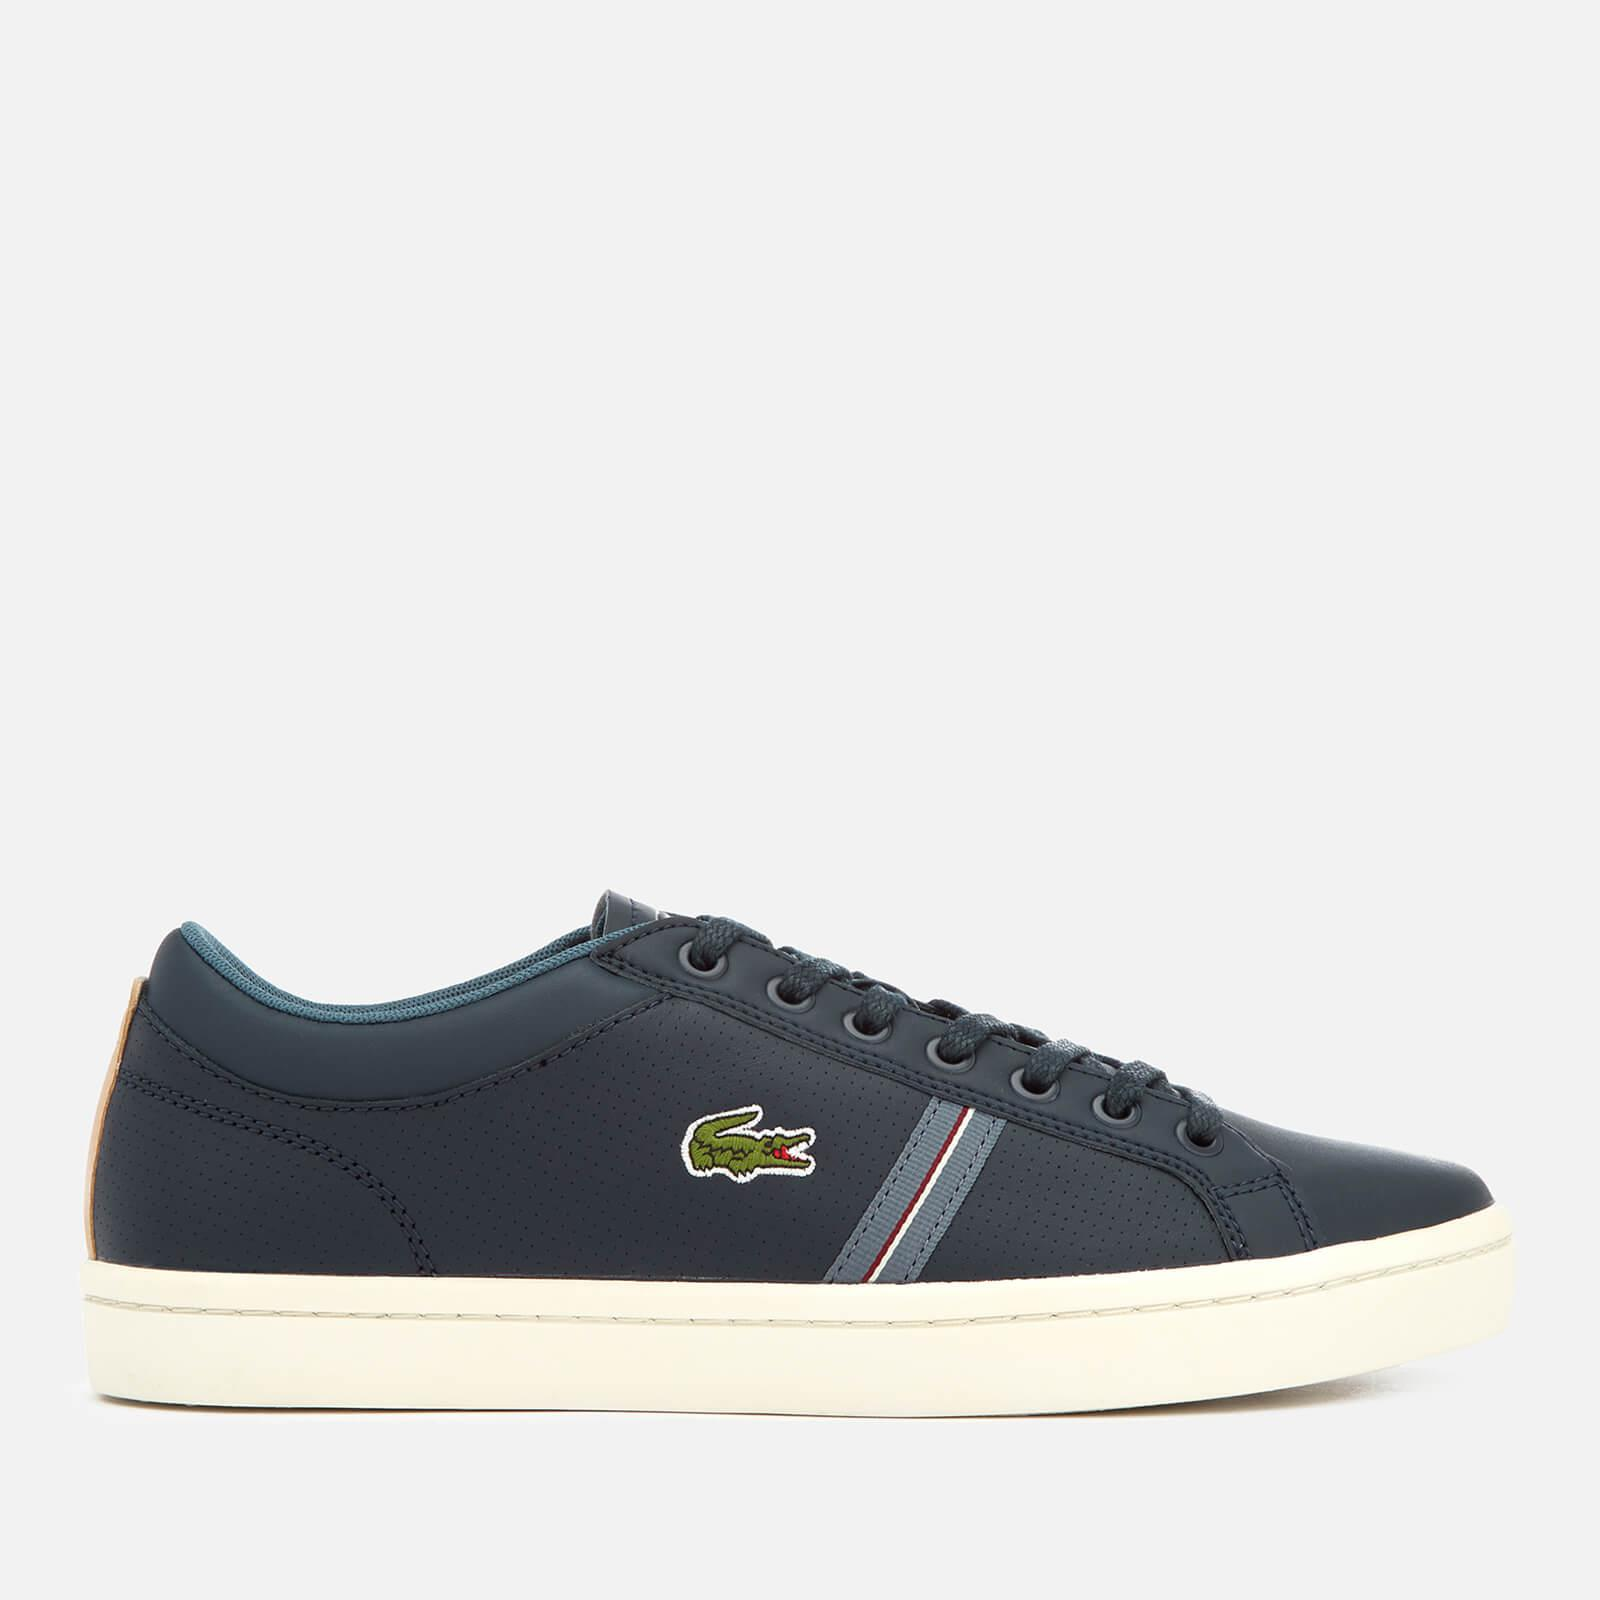 13c85b4ac425cb Lyst - Lacoste Straightset Sport 318 1 Leather Trainers in Blue for Men